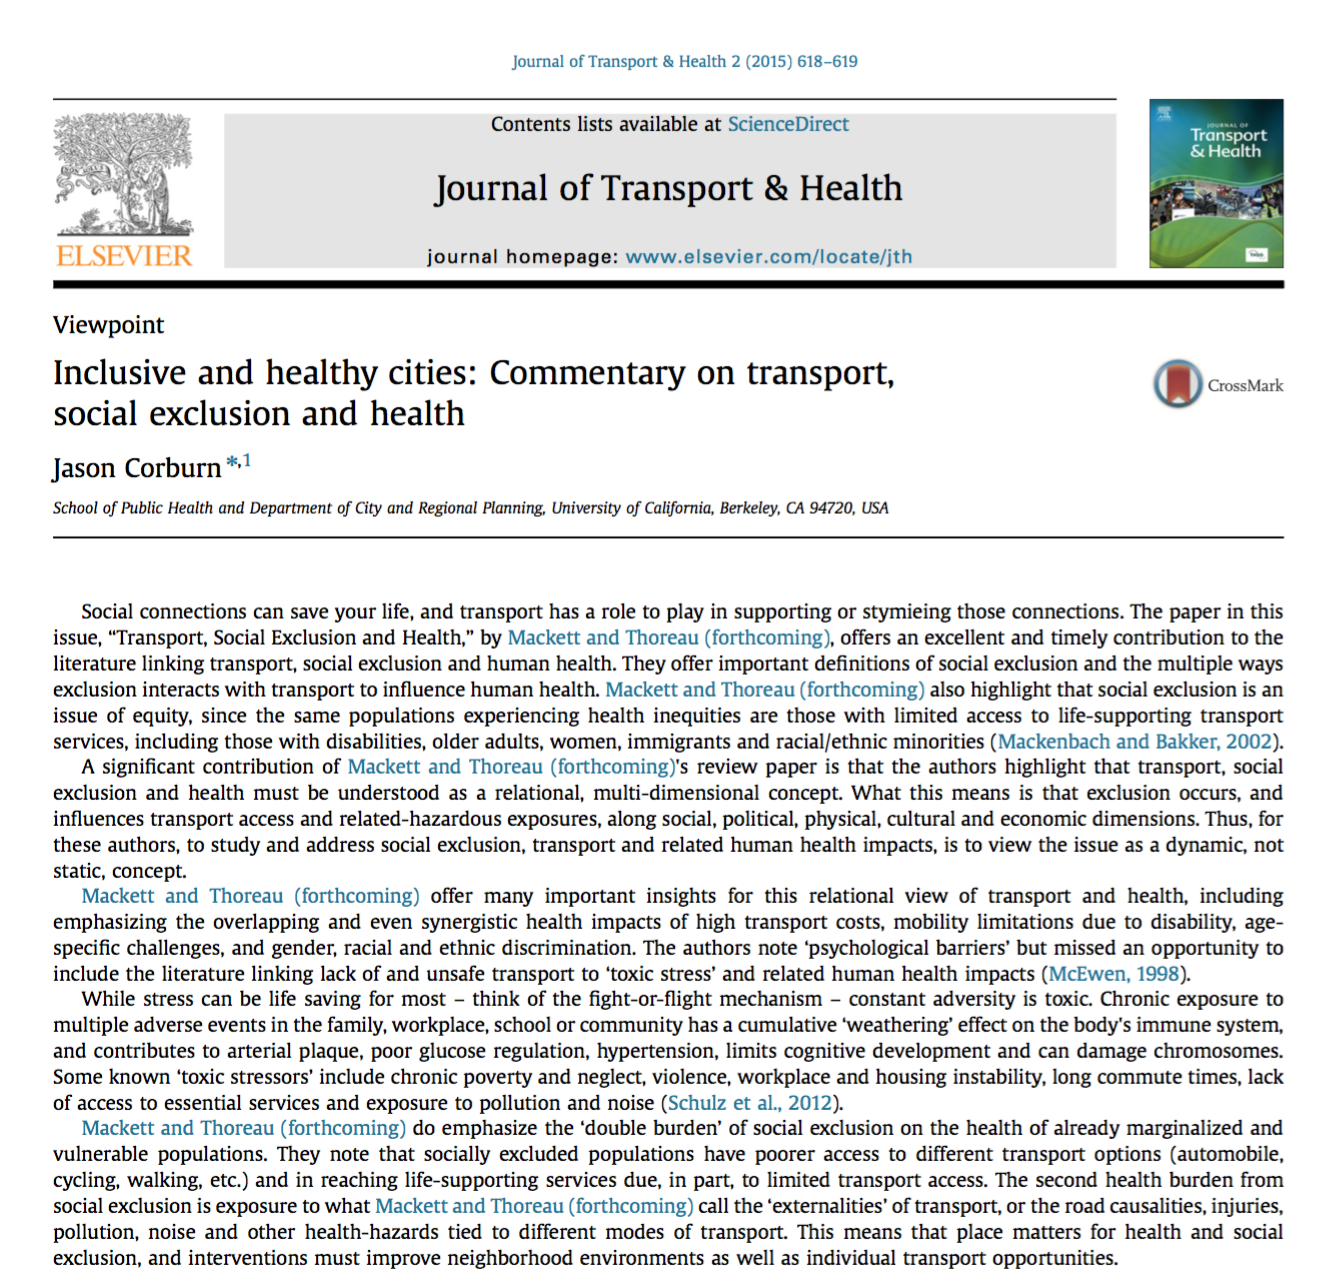 Inclusive and Healthy Cities: Commentary on Transport, Social Exclusion and Health